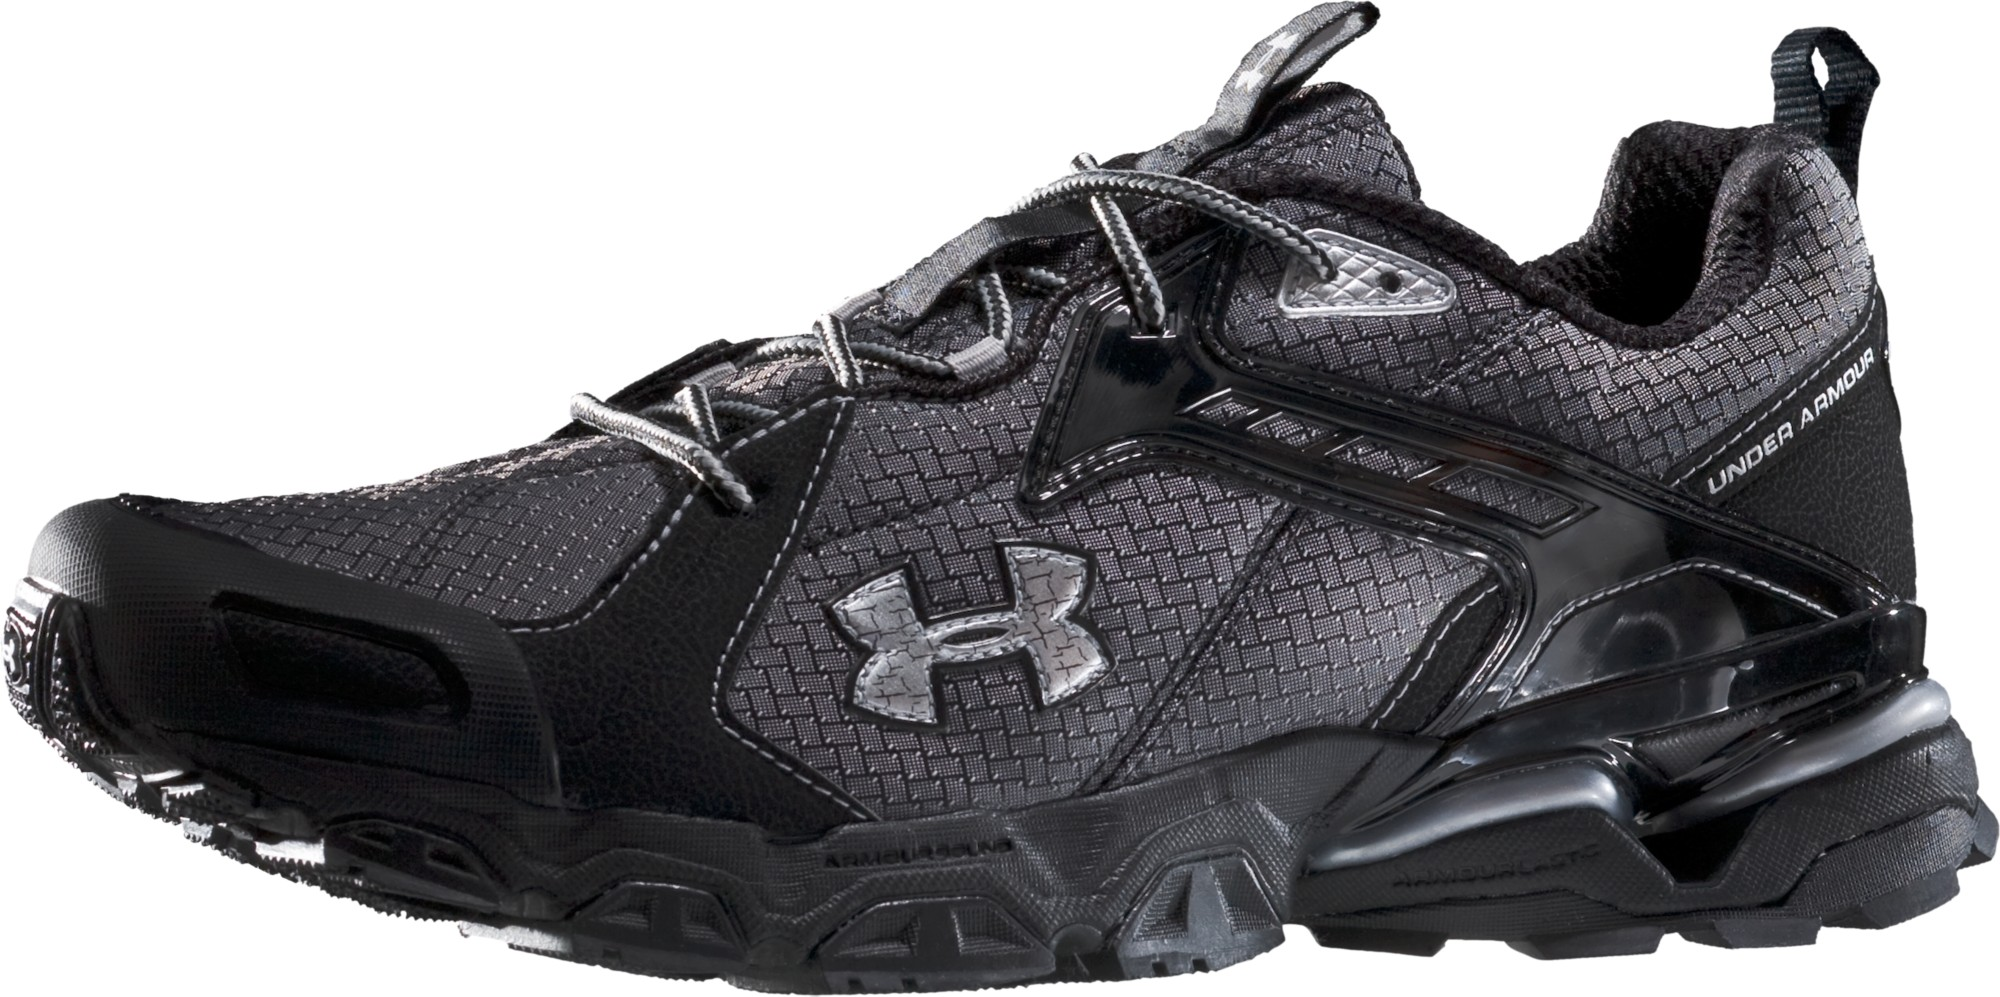 photo: Under Armour Men's Janan trail running shoe